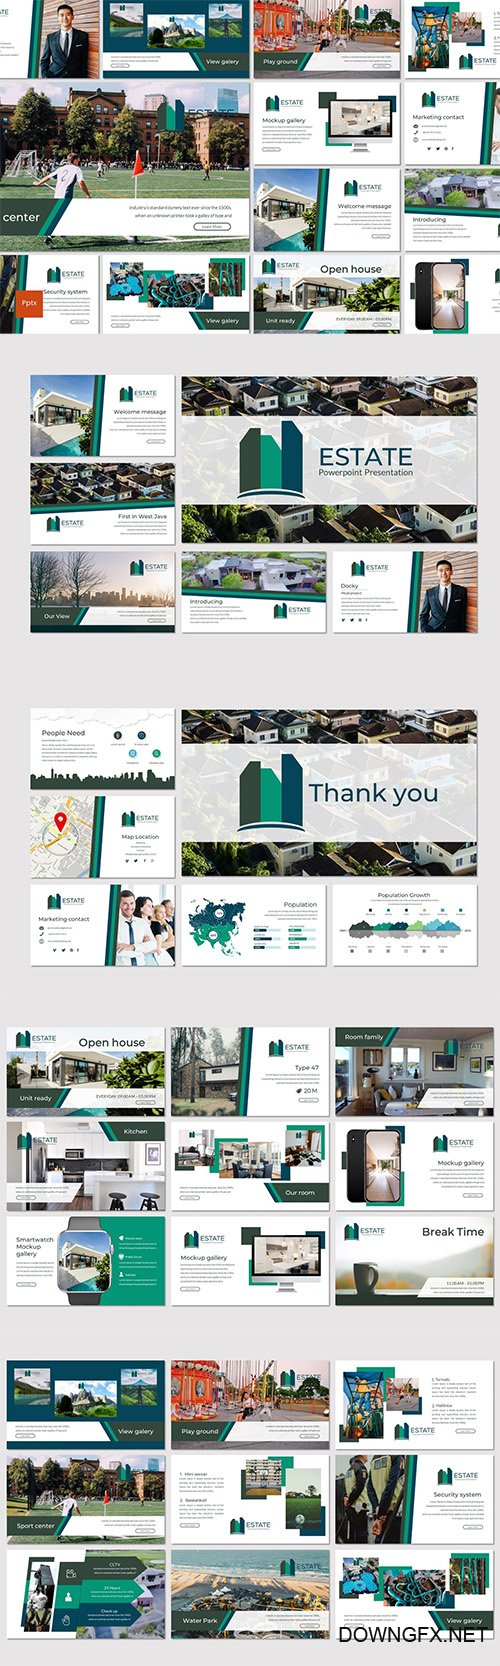 Estate - Creative Powerpoint Keynote and Google Slides Templates